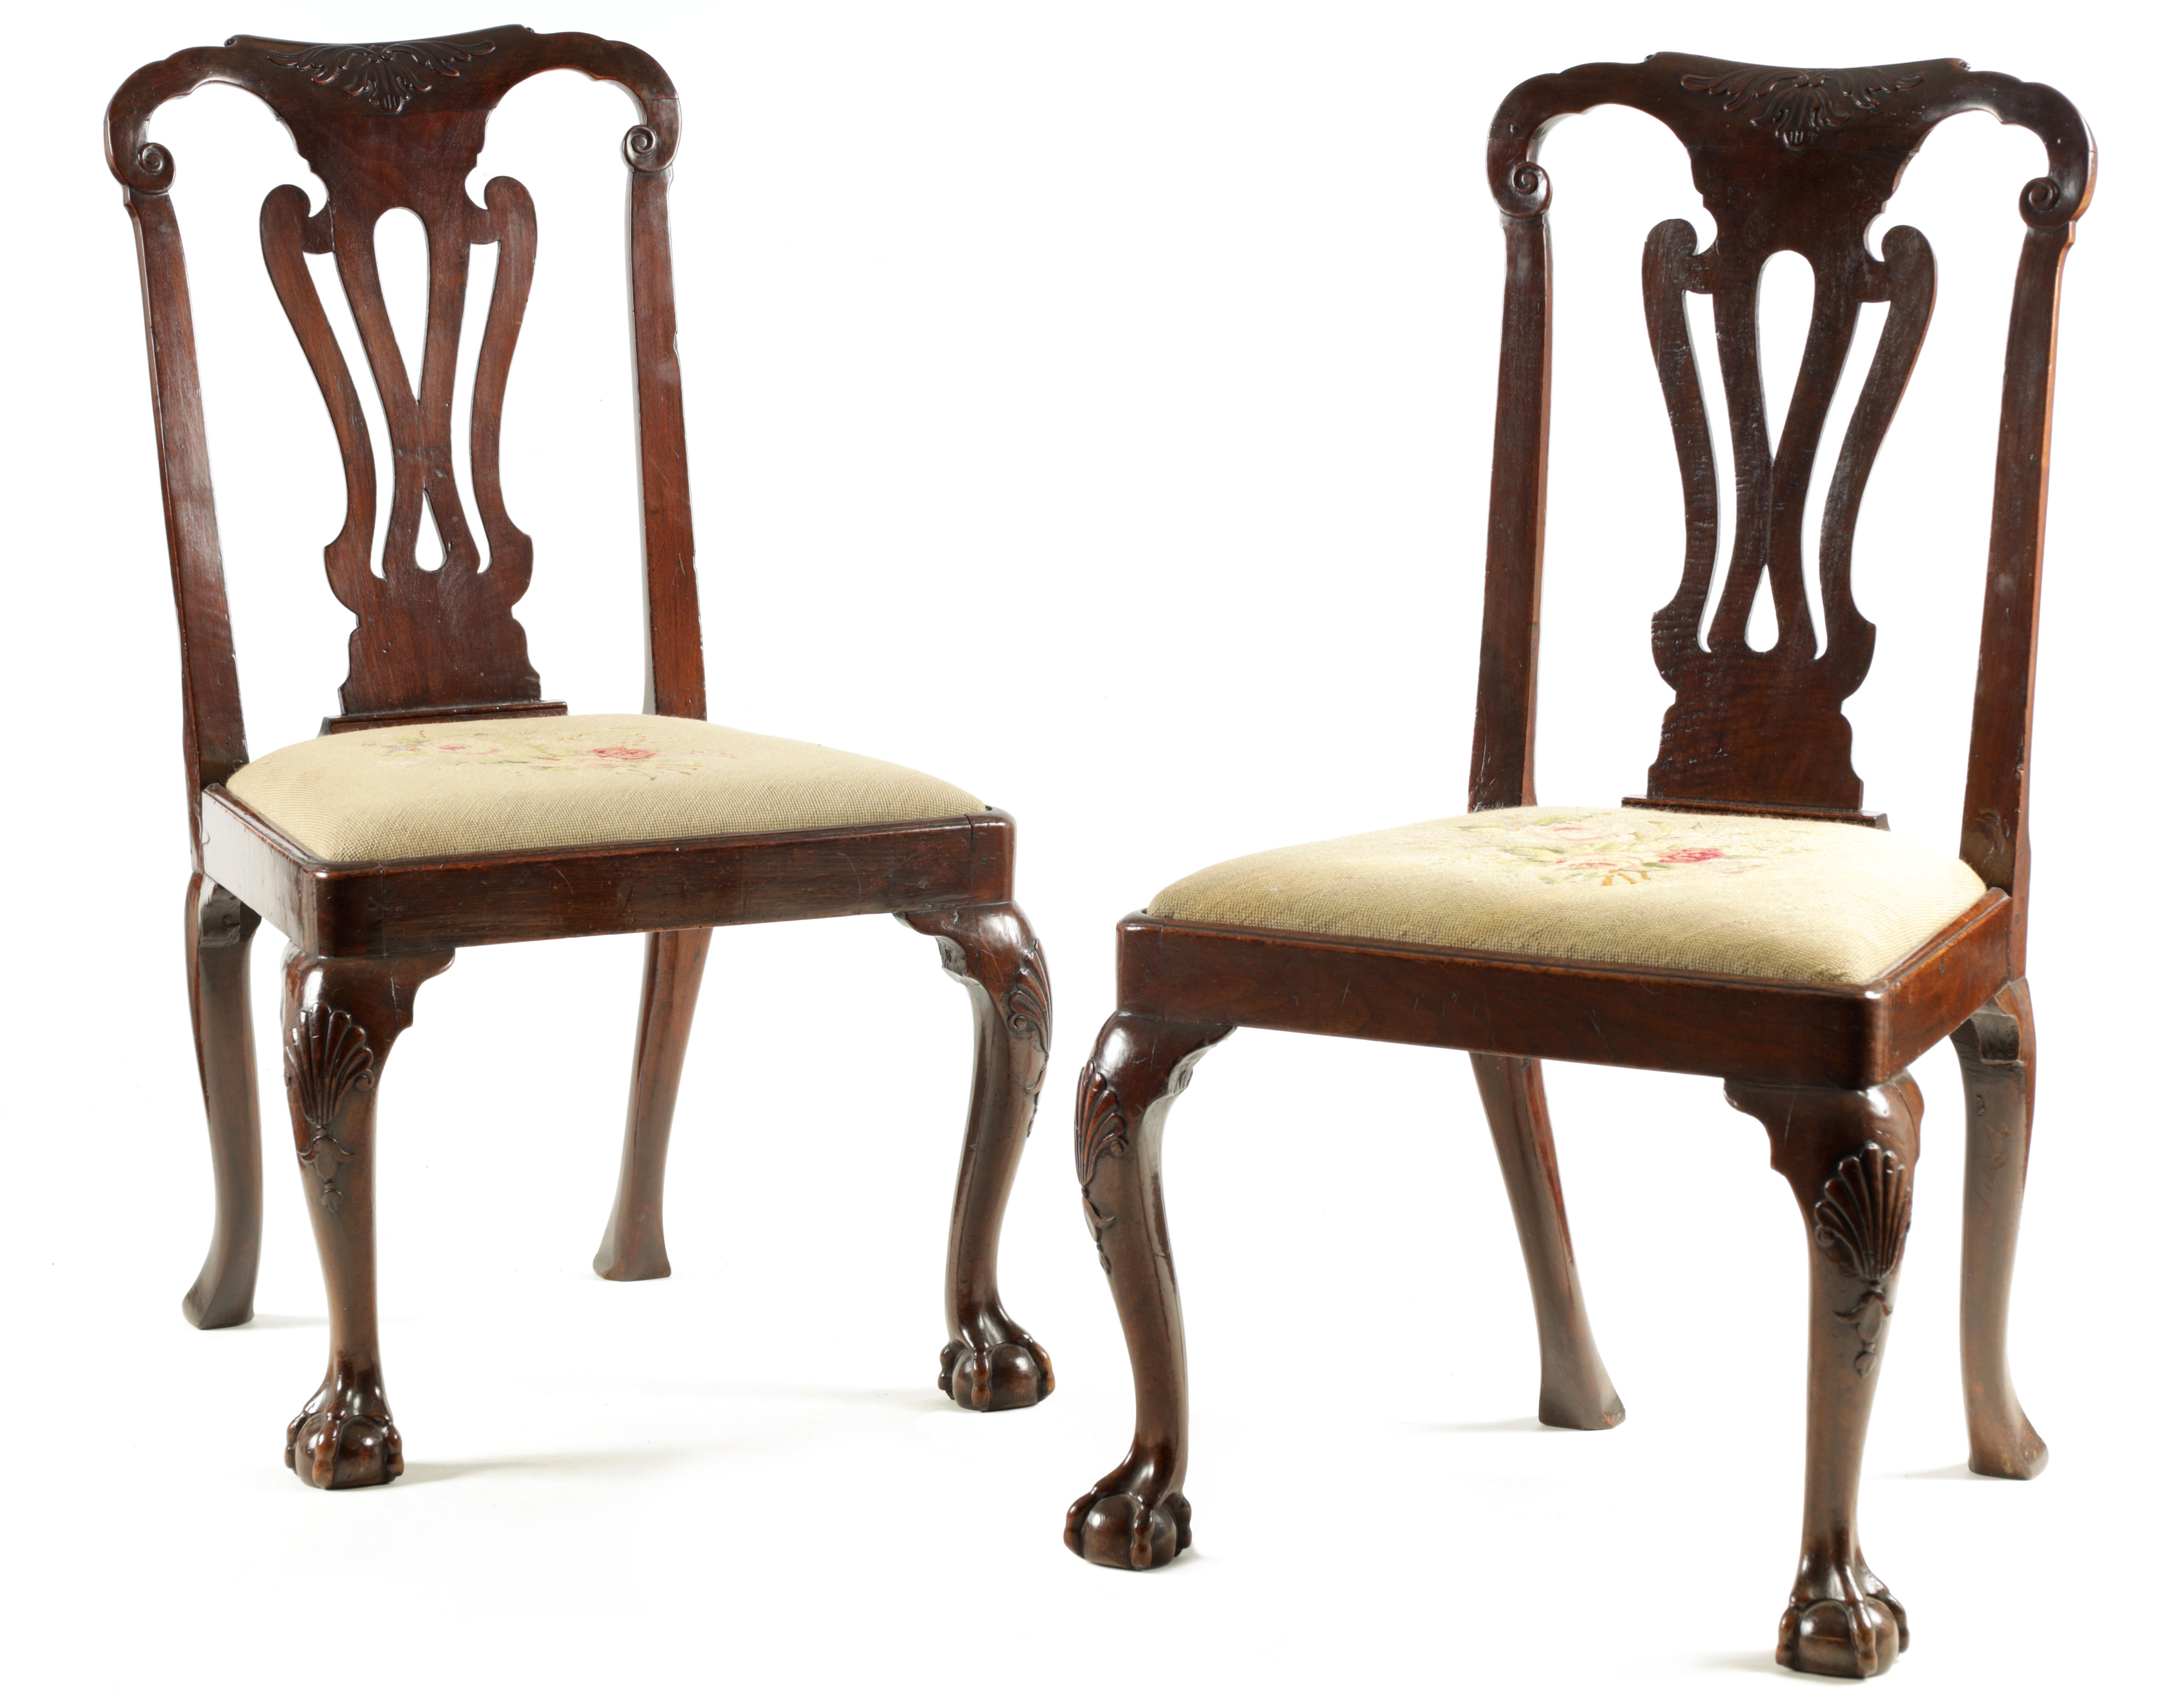 A PAIR OF GEORGE I WALNUT SIDE CHAIRS with leaf carved and scrolled top rails above vase-shaped